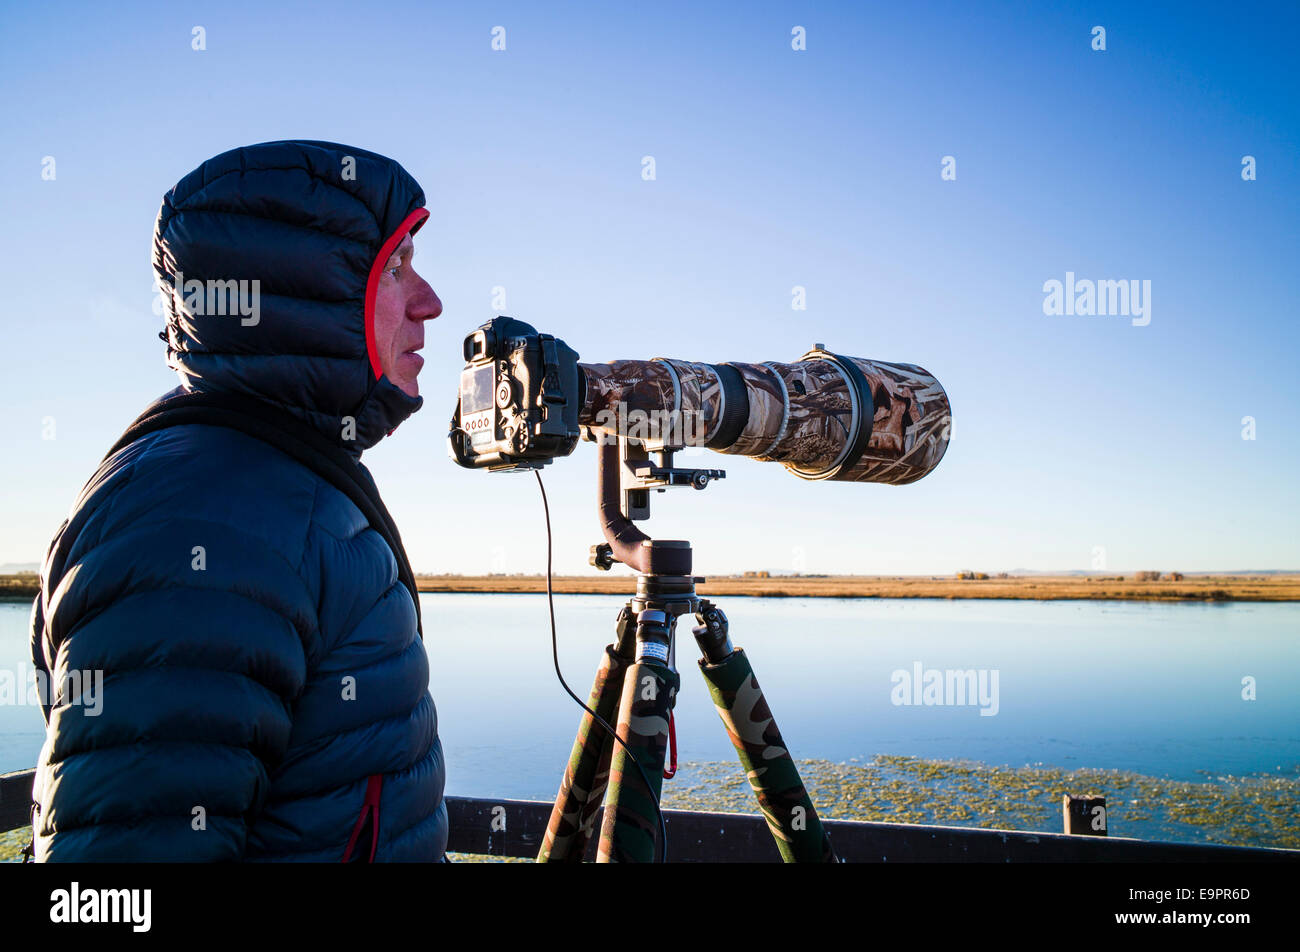 Professional photographer with long telephoto lens capturing wildlife, Monte Vista National Wildlife Refuge, Central - Stock Image